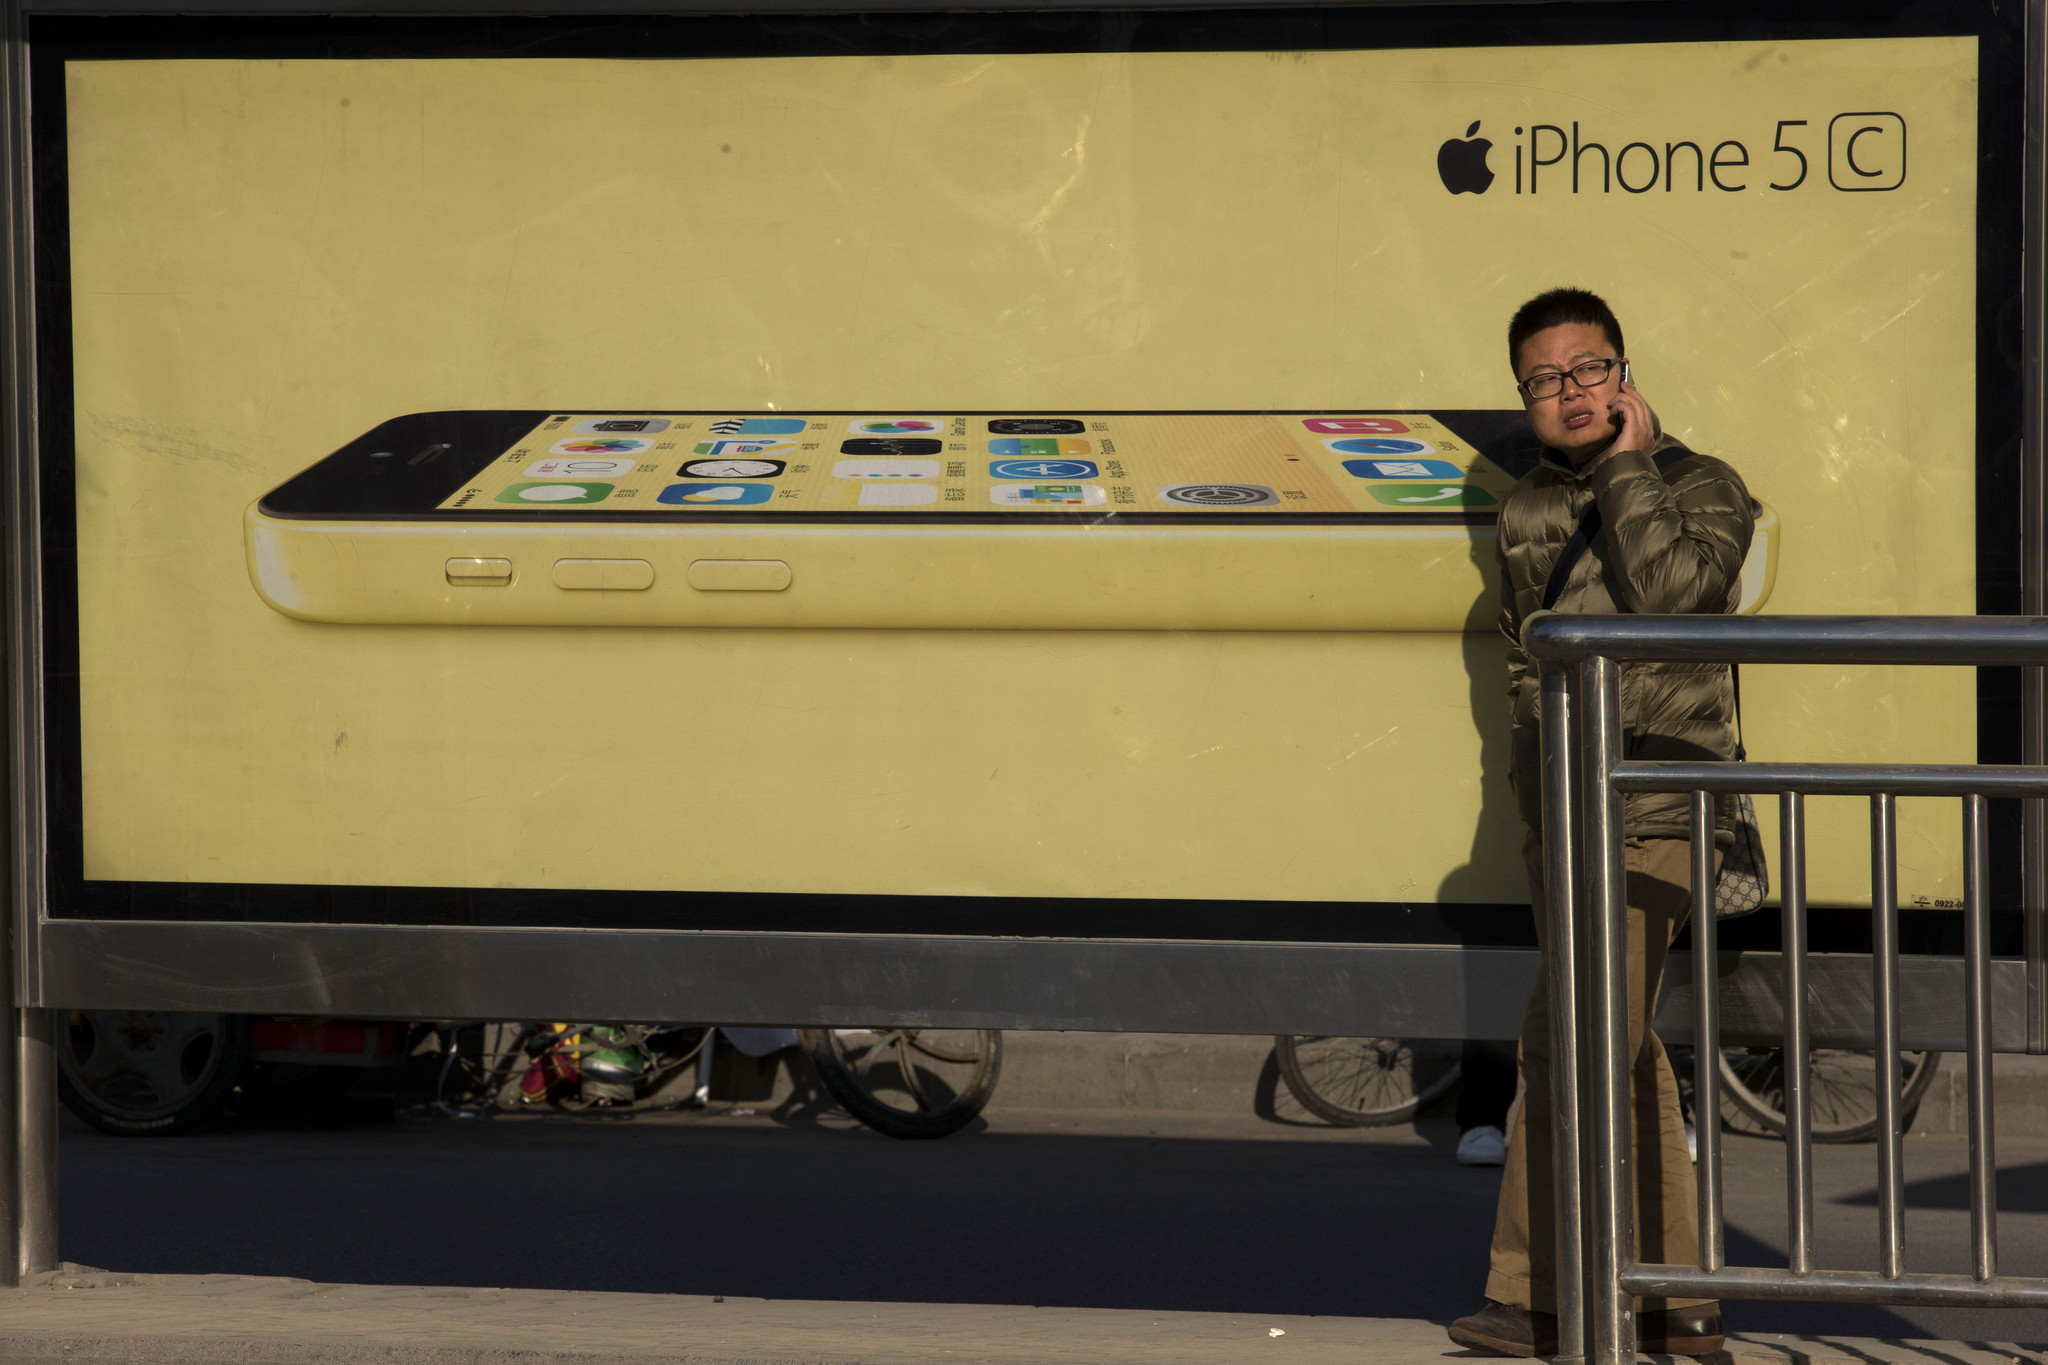 Apple's stock rises on news of China Mobile deal - LA Times